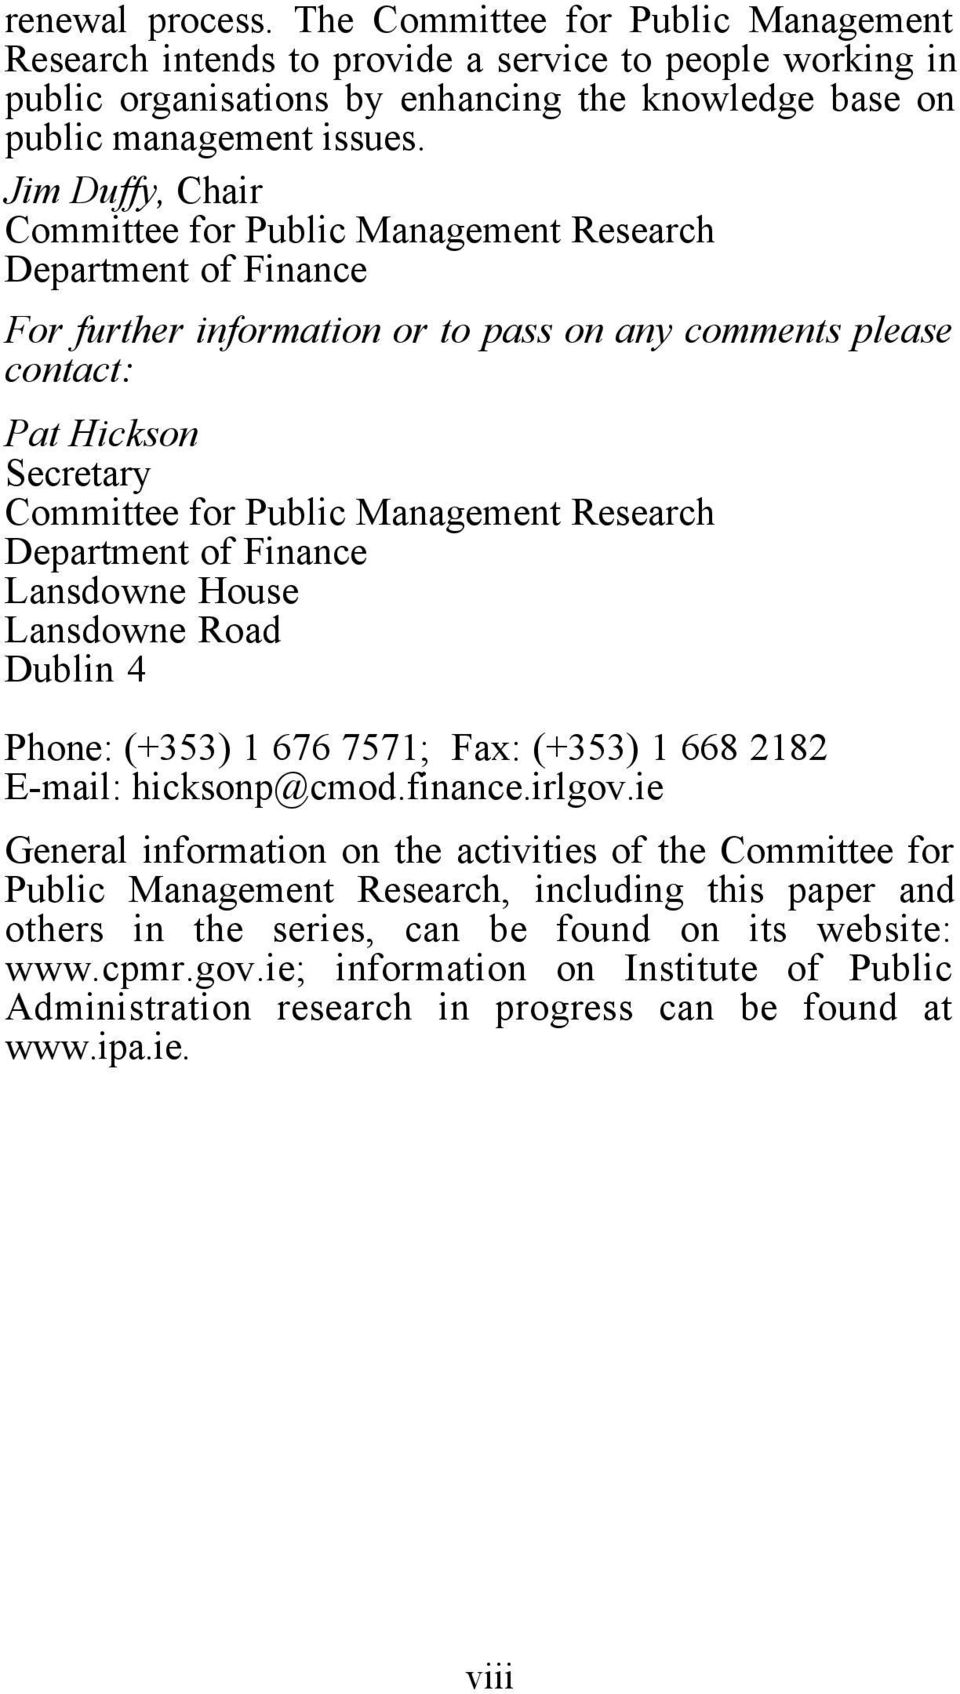 Management Research Department of Finance Lansdowne House Lansdowne Road Dublin 4 Phone: (+353) 1 676 7571; Fax: (+353) 1 668 2182 E-mail: hicksonp@cmod.finance.irlgov.